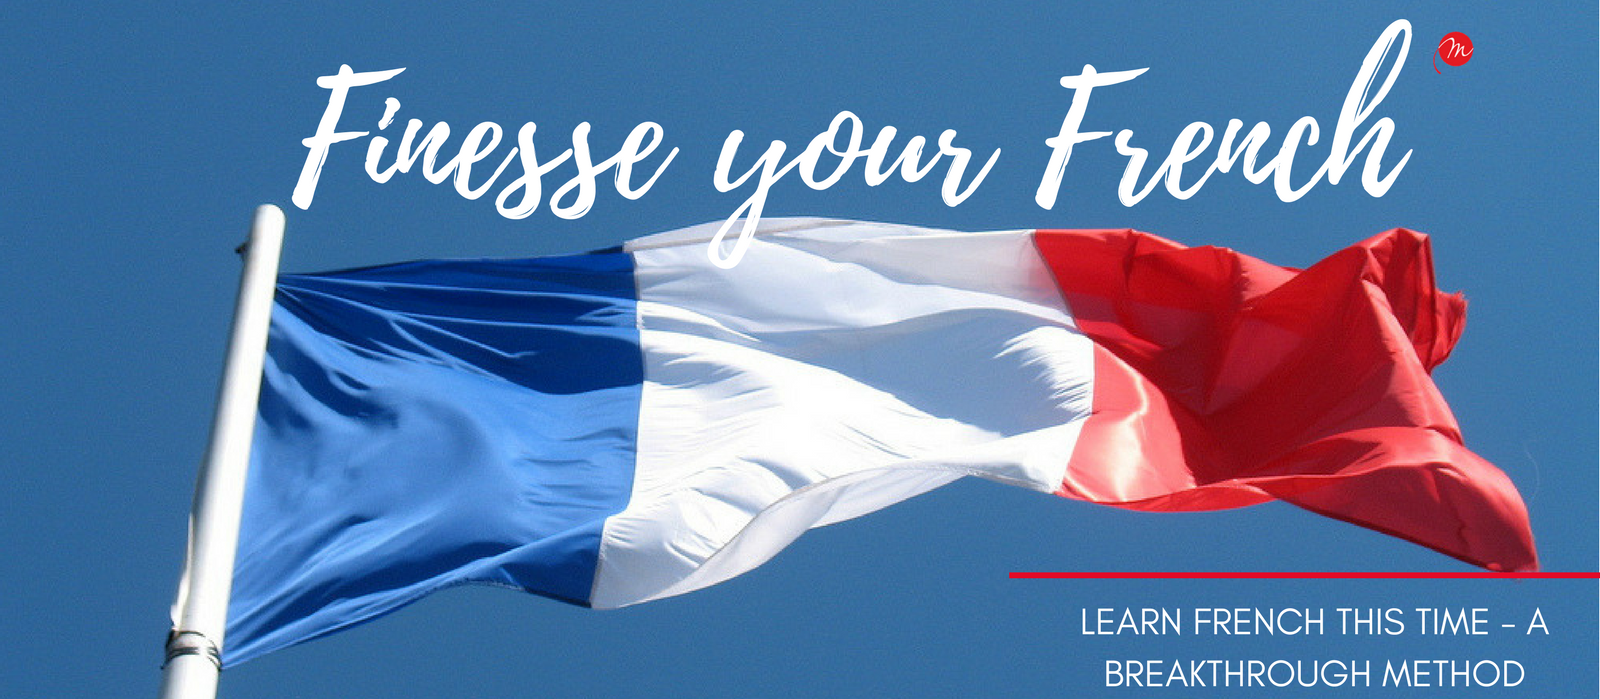 MyFrenchLife™ - MyFrenchLife.org - Learn French - A breakthrough method - Header